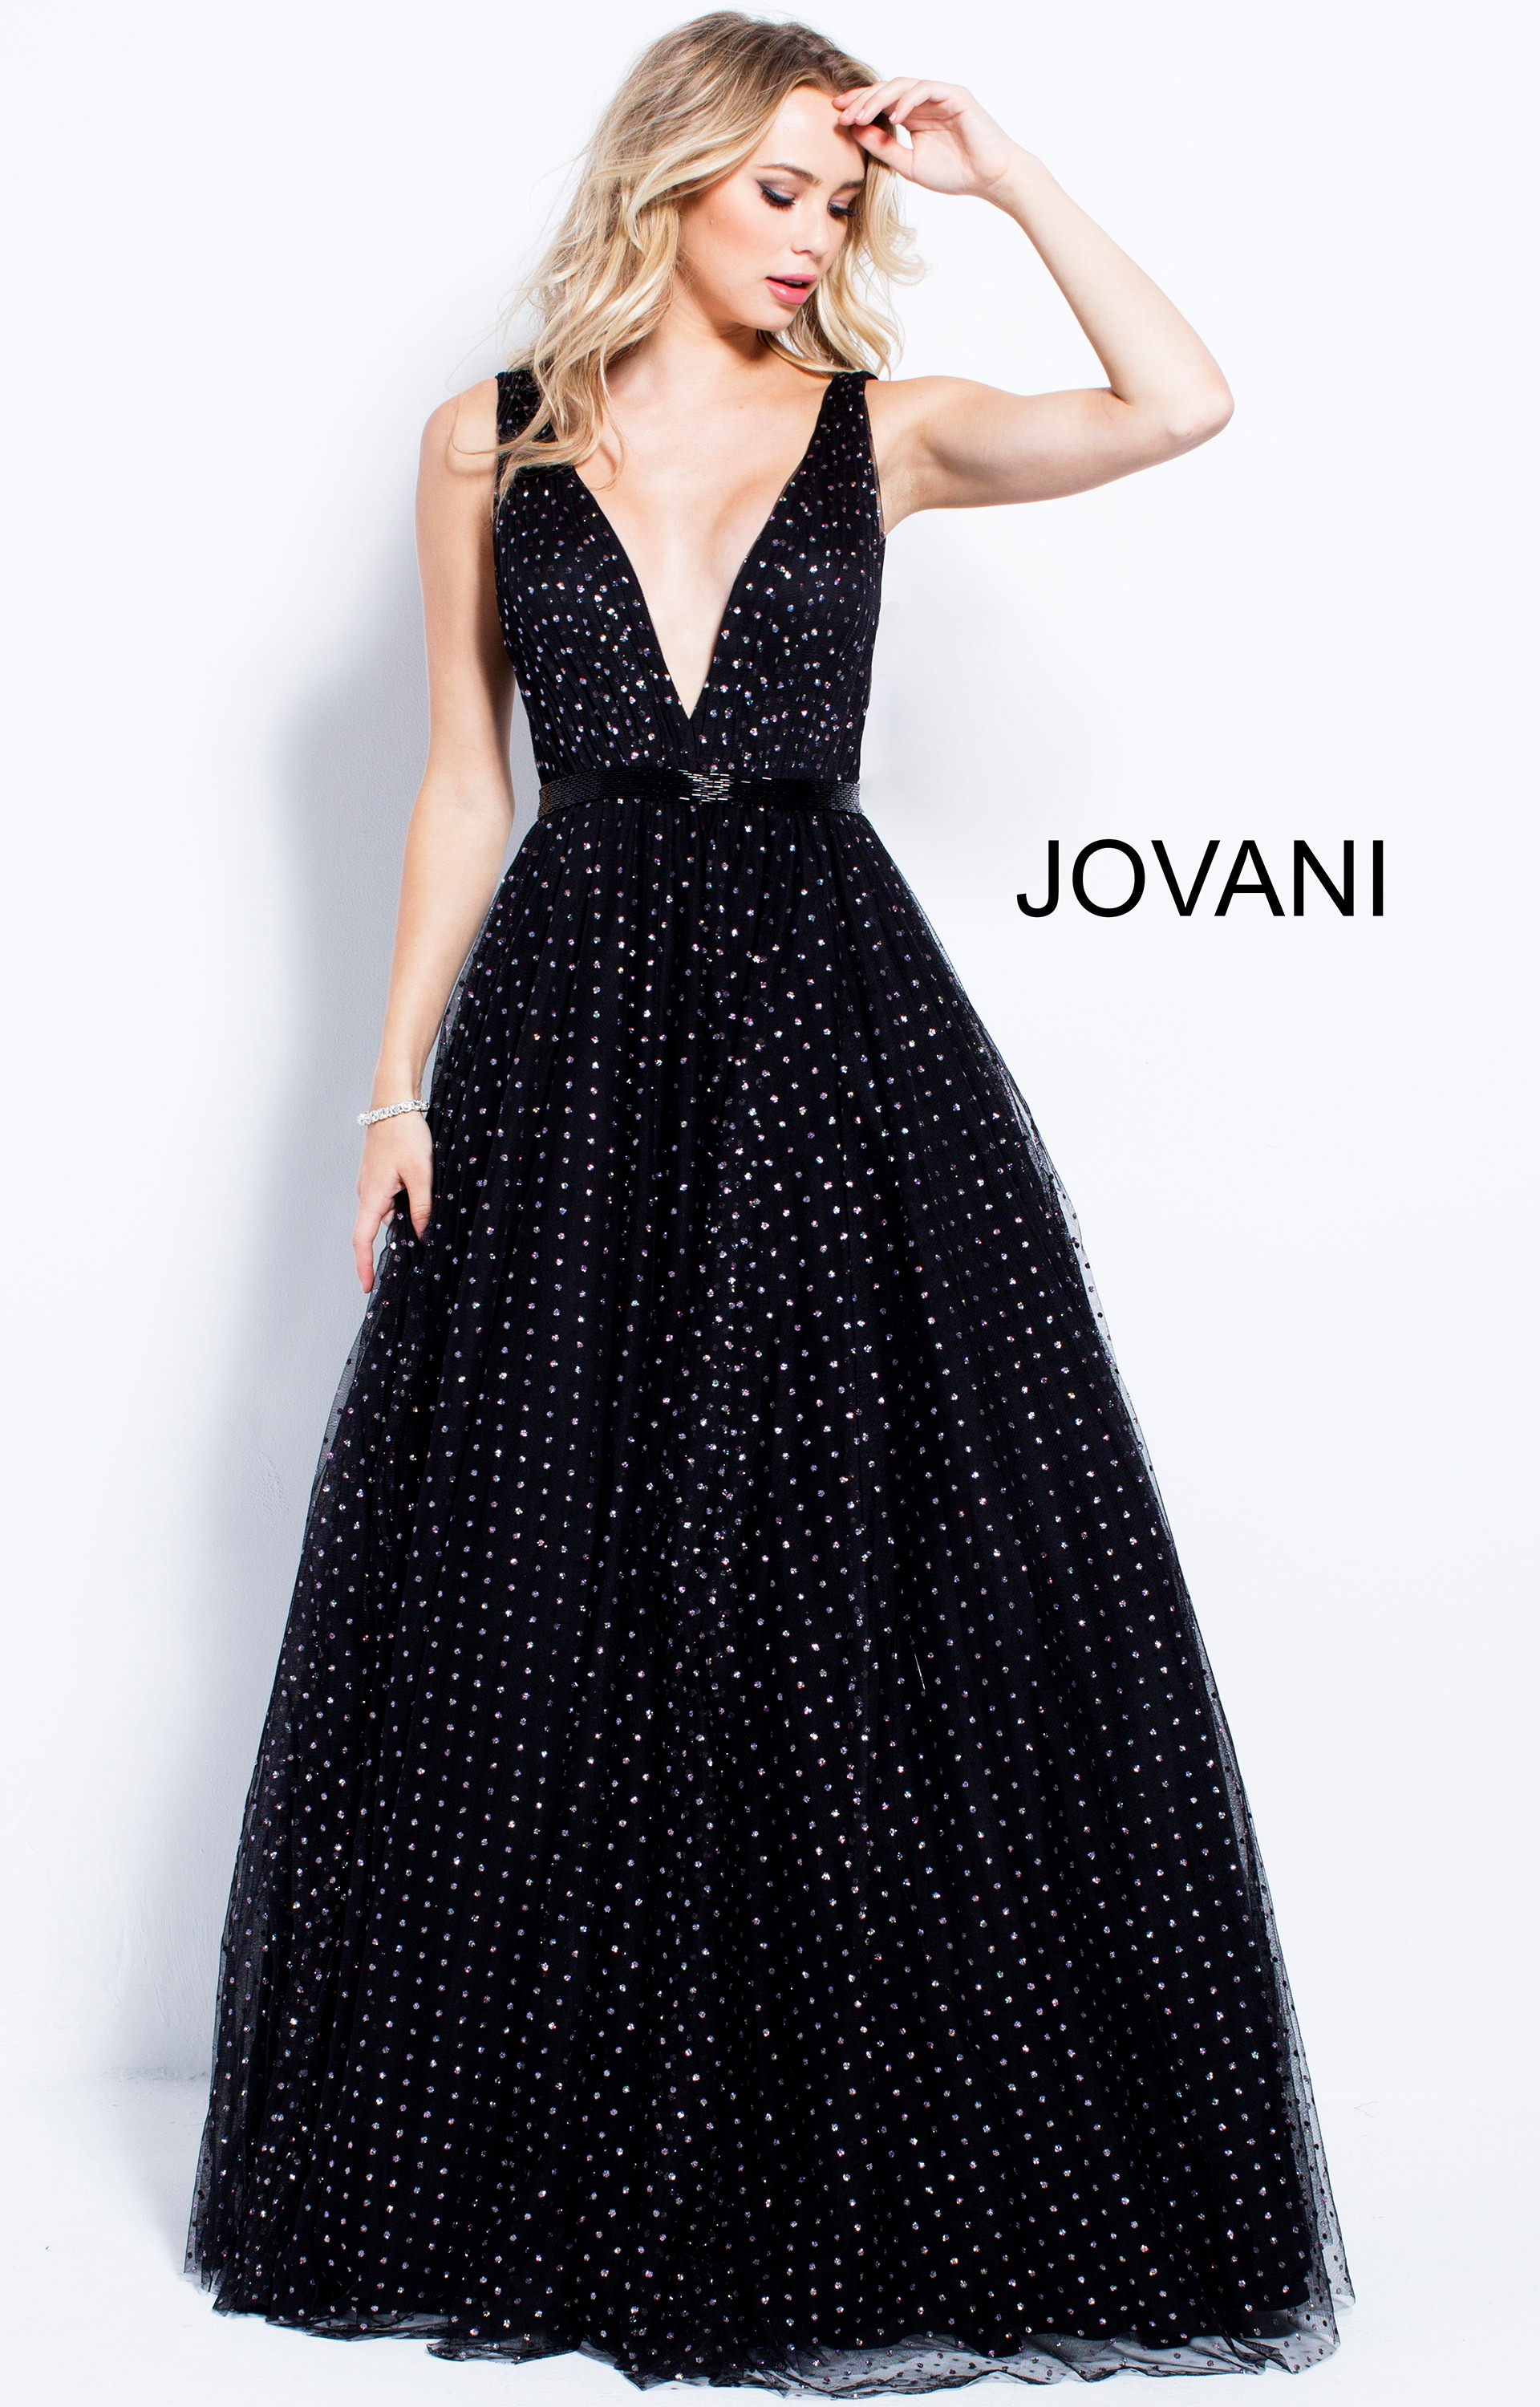 Jovani 57696 - V-Neckline Polka Dotted Ball Gown Dress Prom Dress